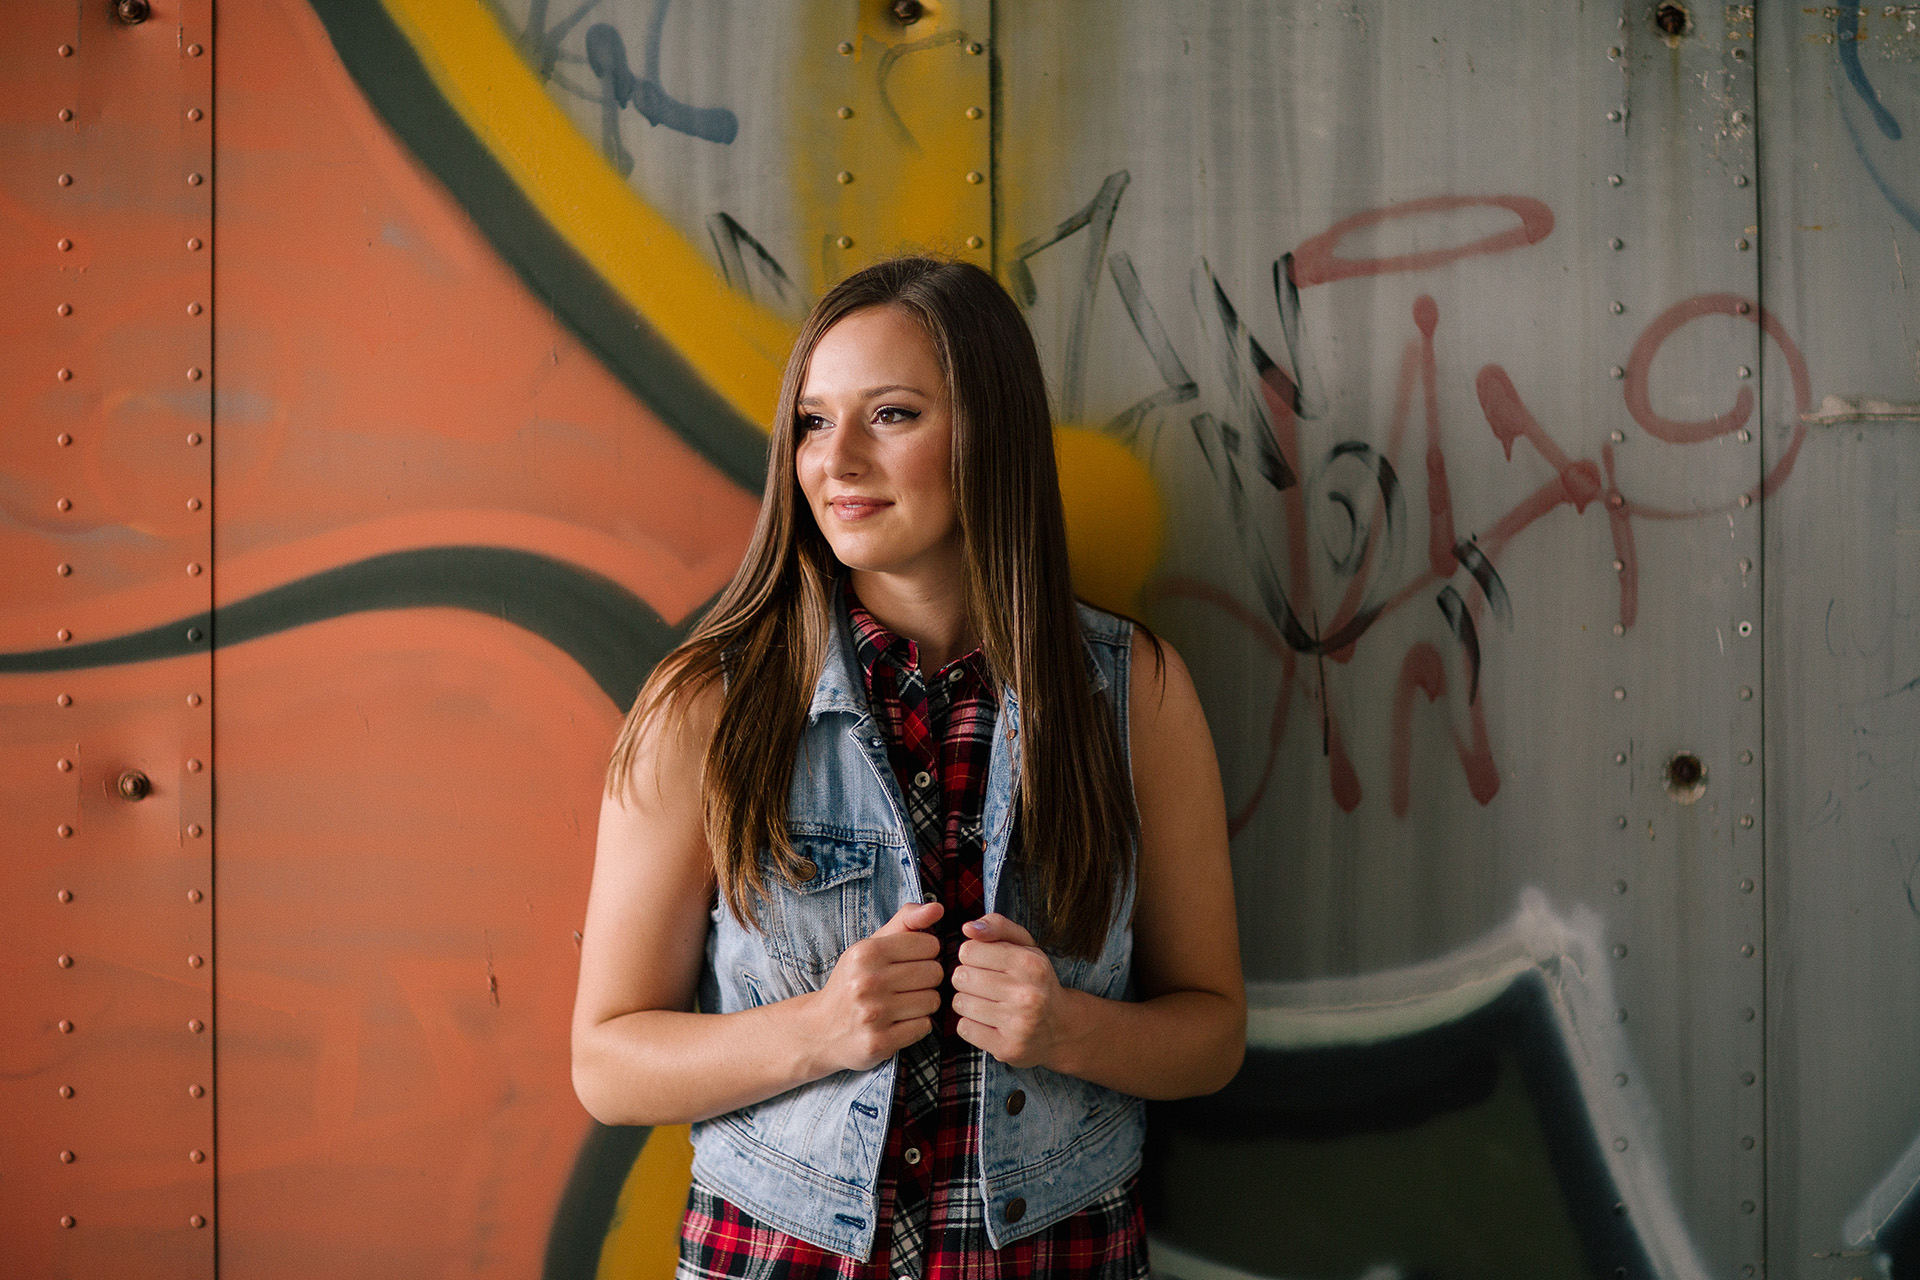 Poland High School Senior Portraits 02.jpg